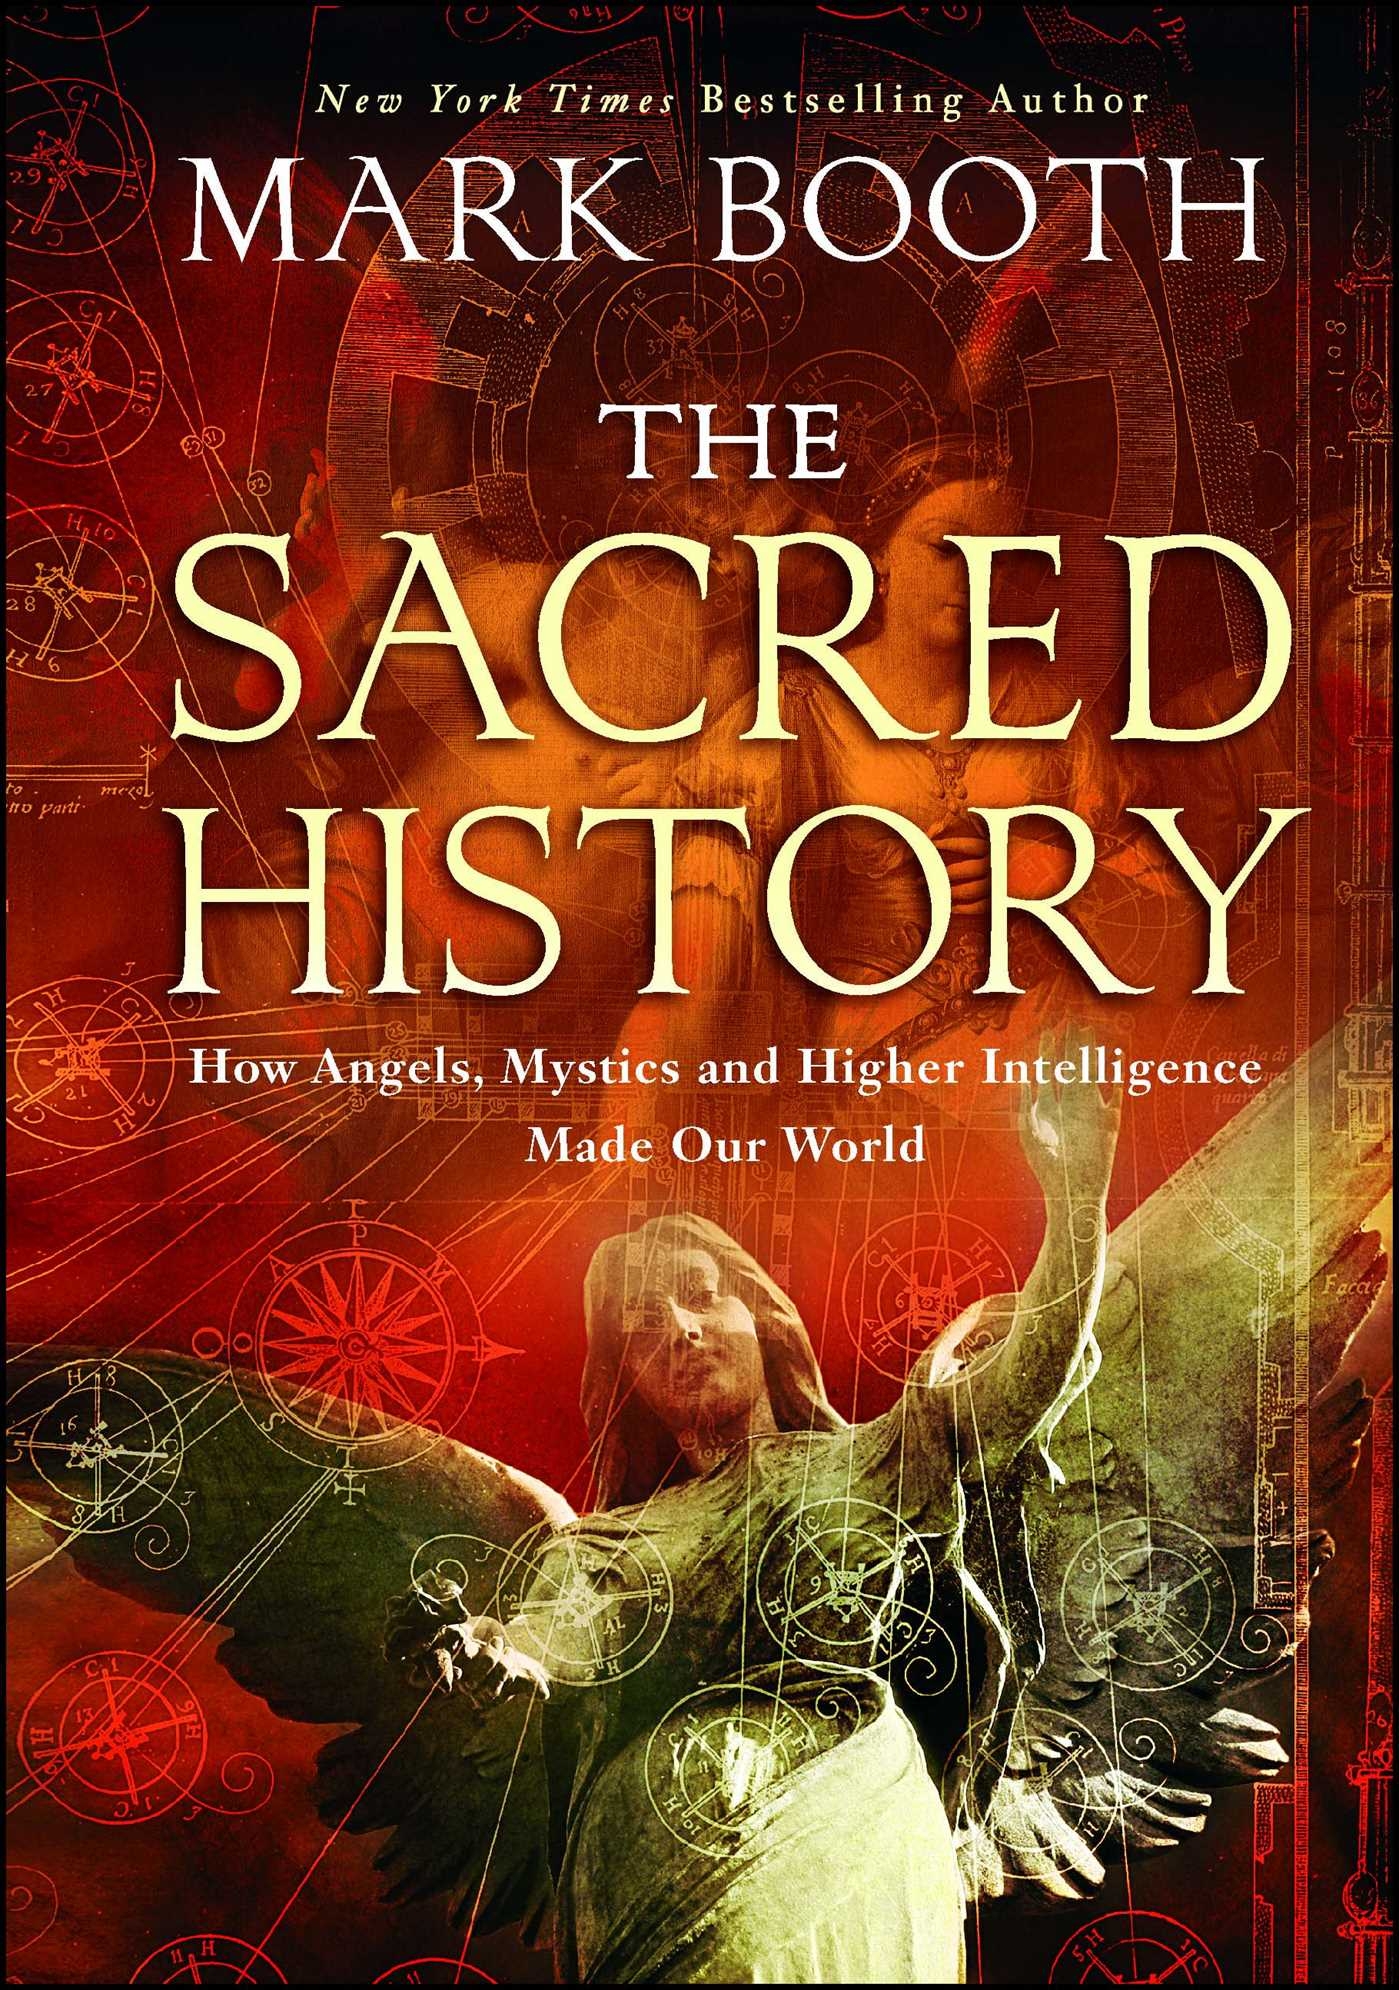 The sacred history 9781451698572 hr